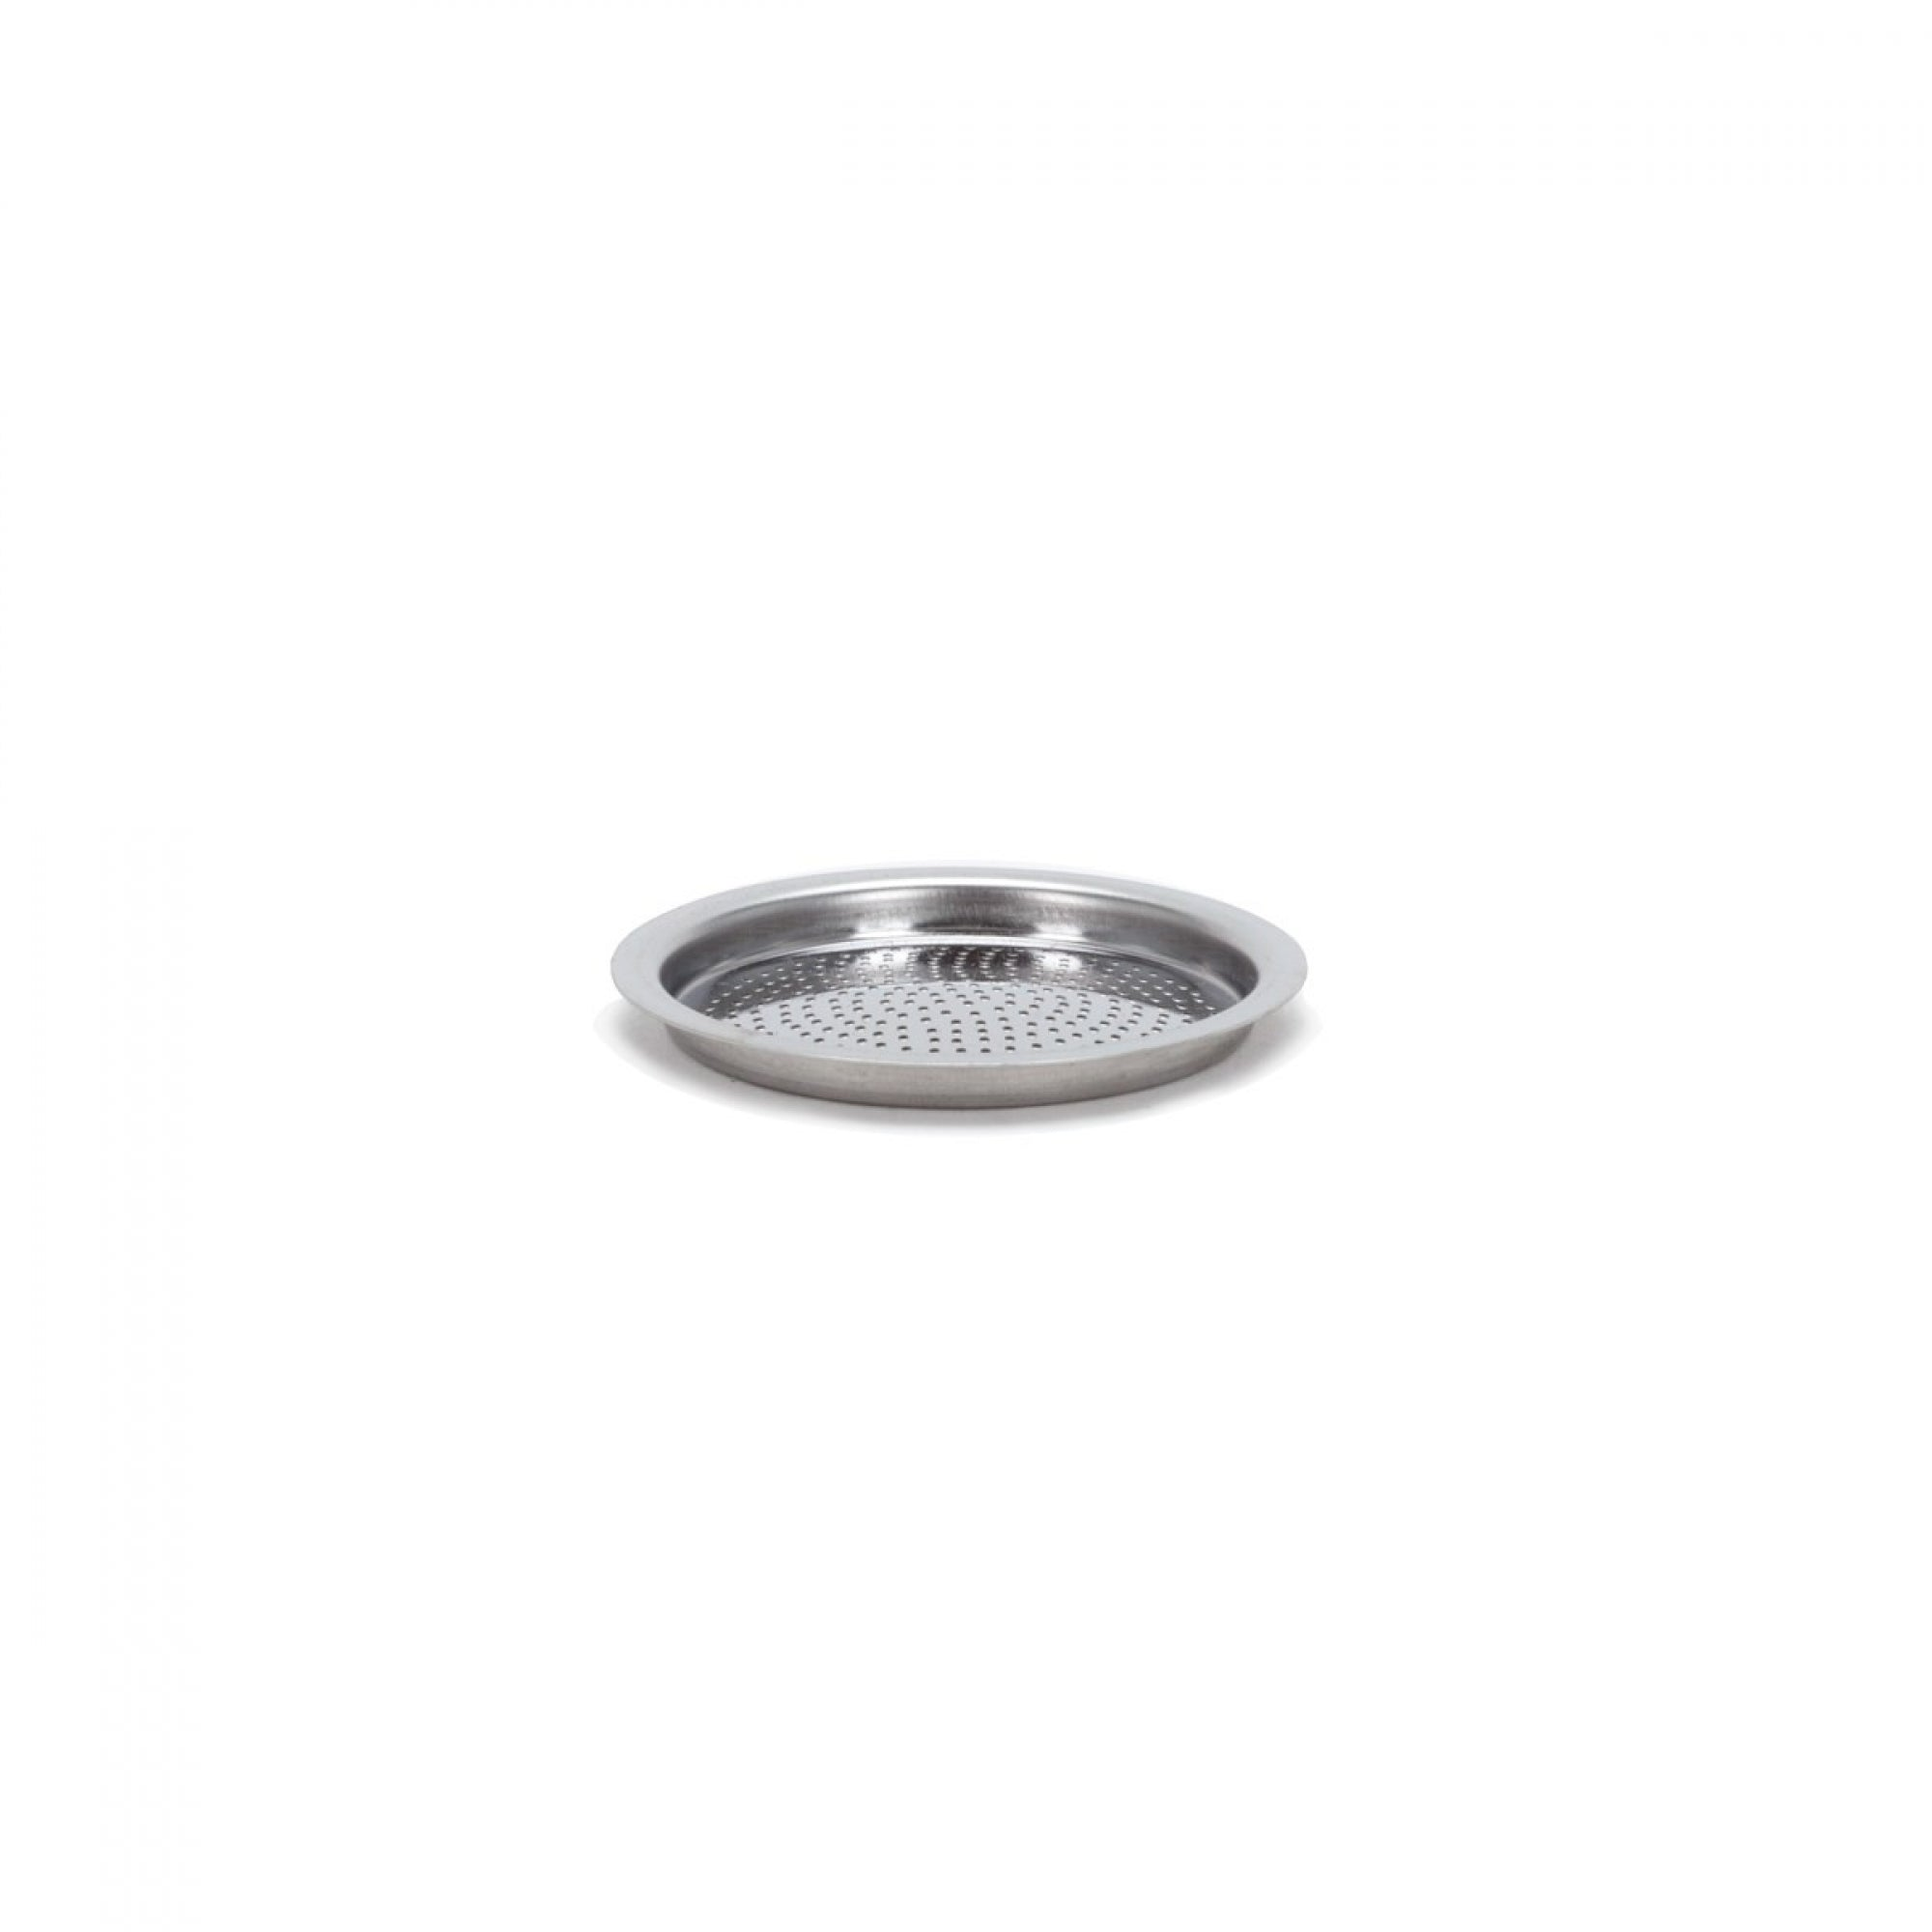 Replacement microfilter for the Alessi La Conica stove-top espresso coffee maker (item number: 90002/3)